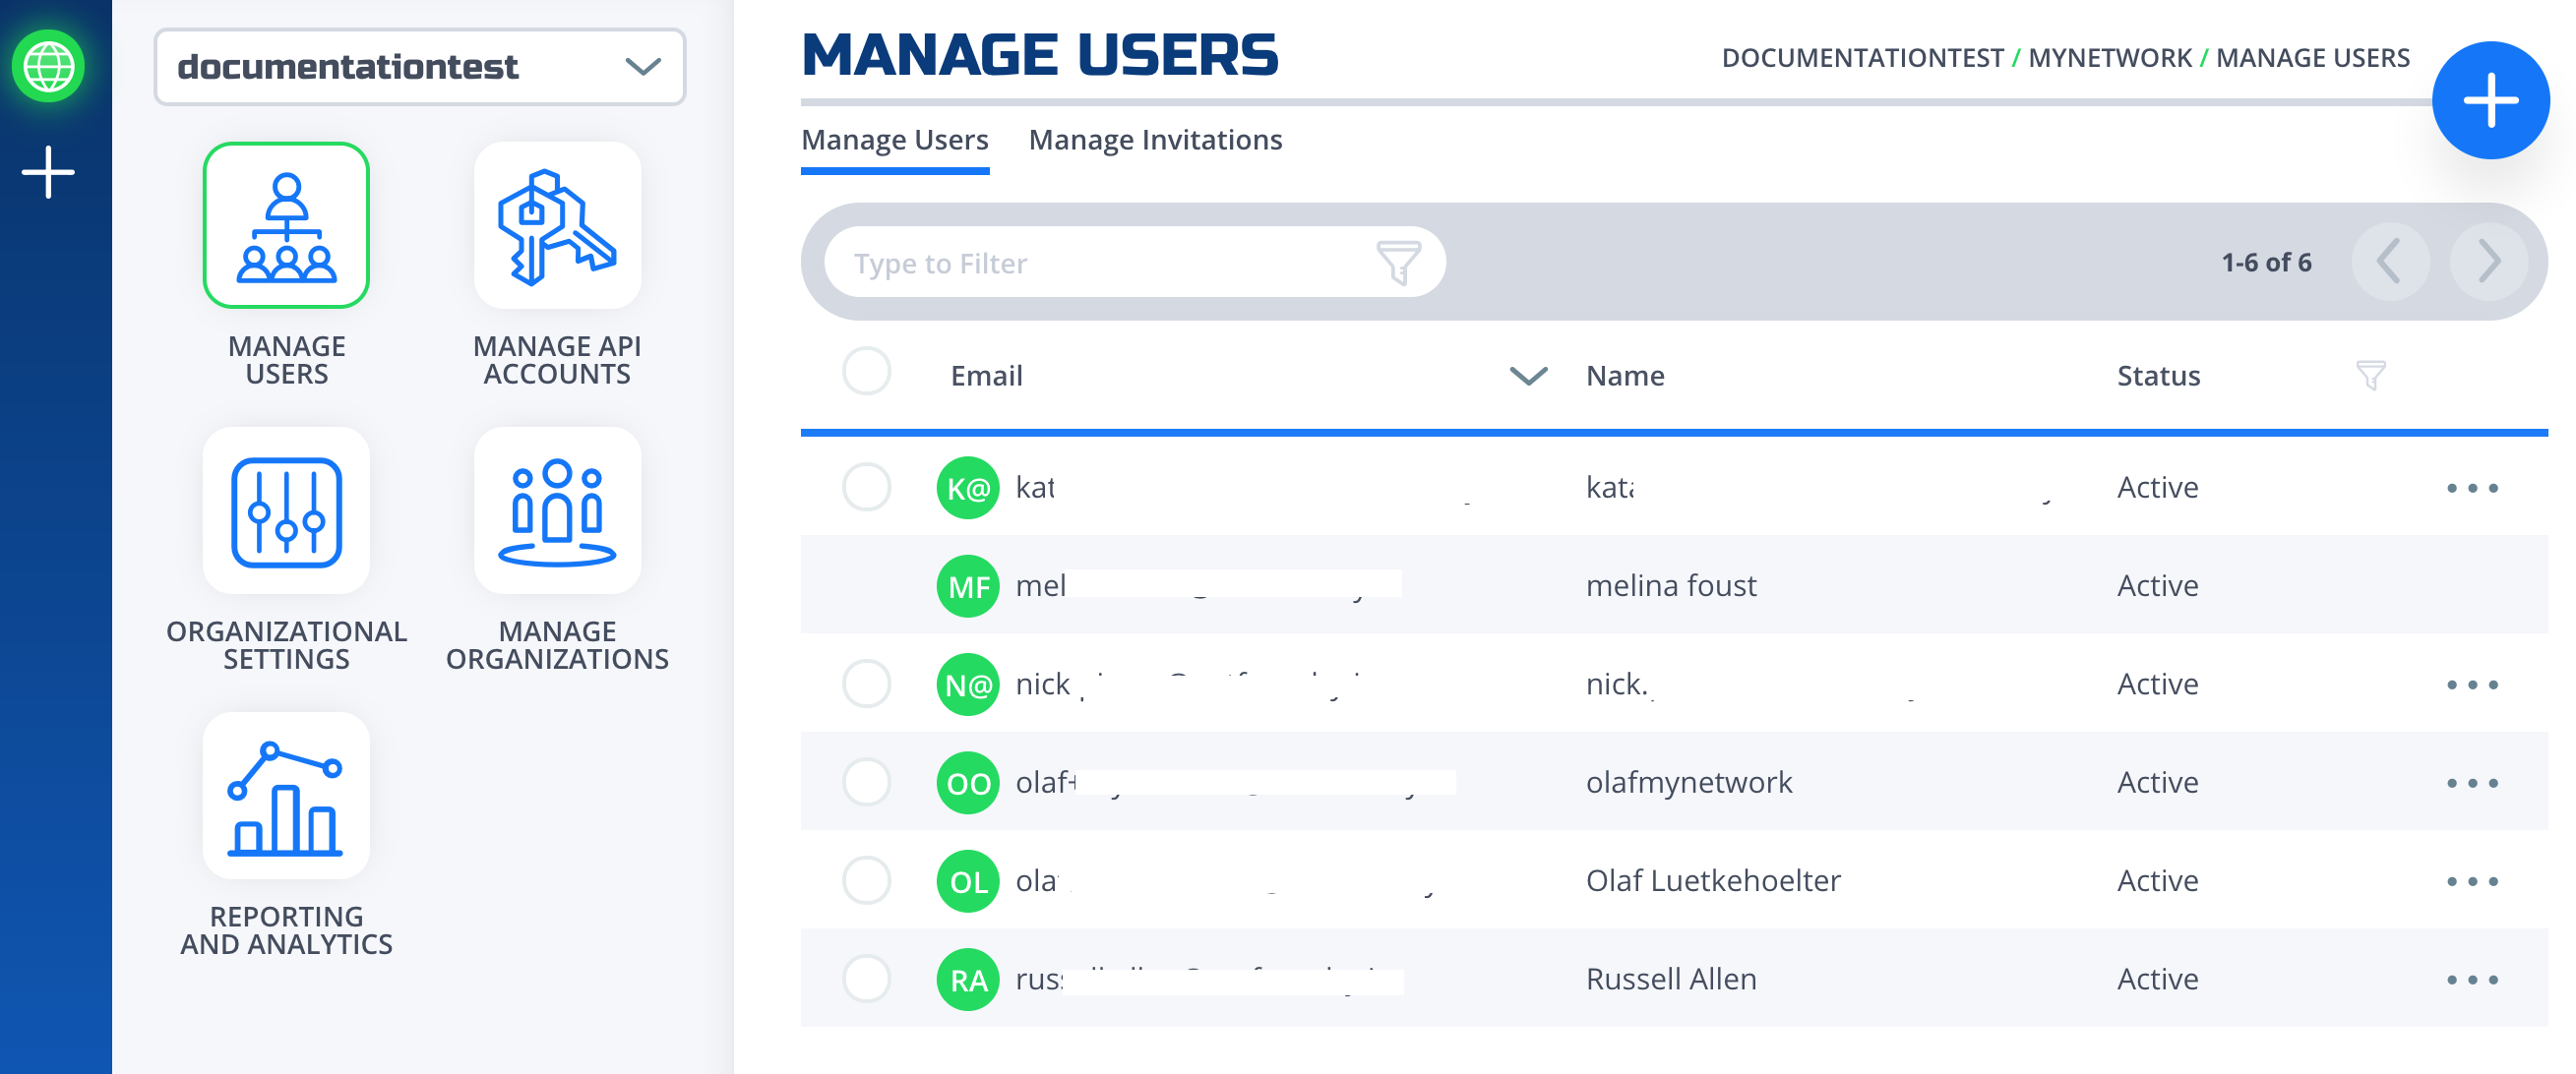 manage_users.png